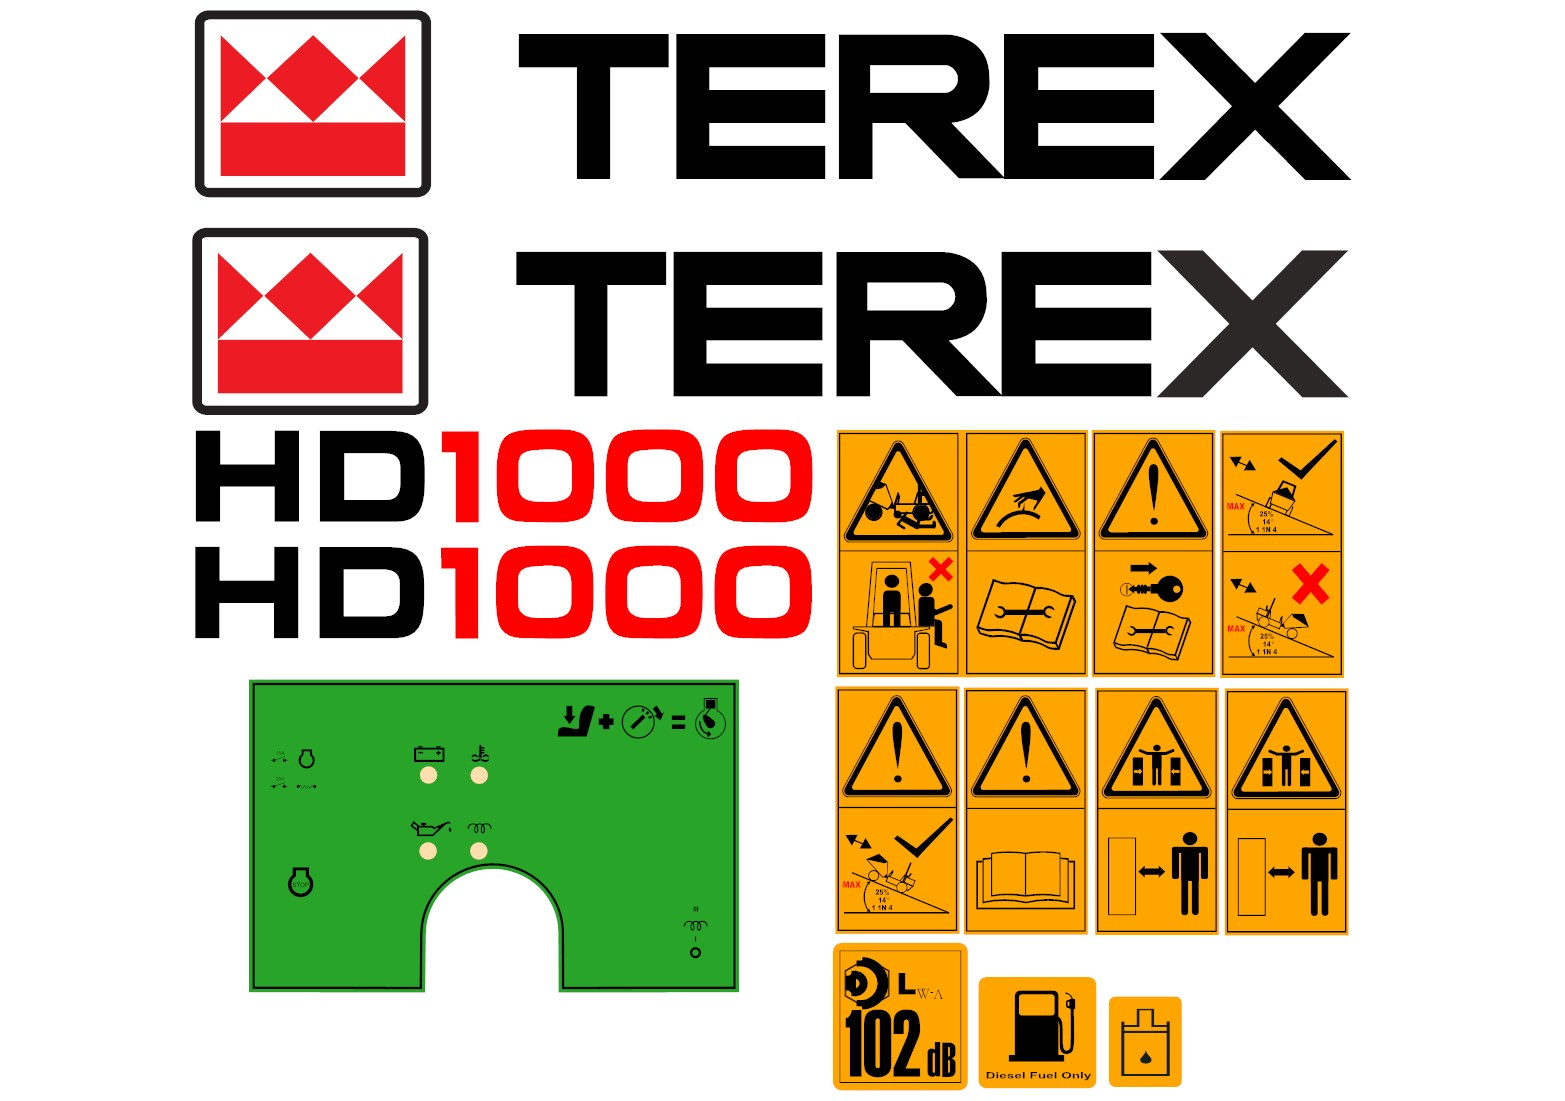 TEREX HD1000 terex hd1000 dumper decal set amc machinery decals terex hd1000 wiring diagram at couponss.co